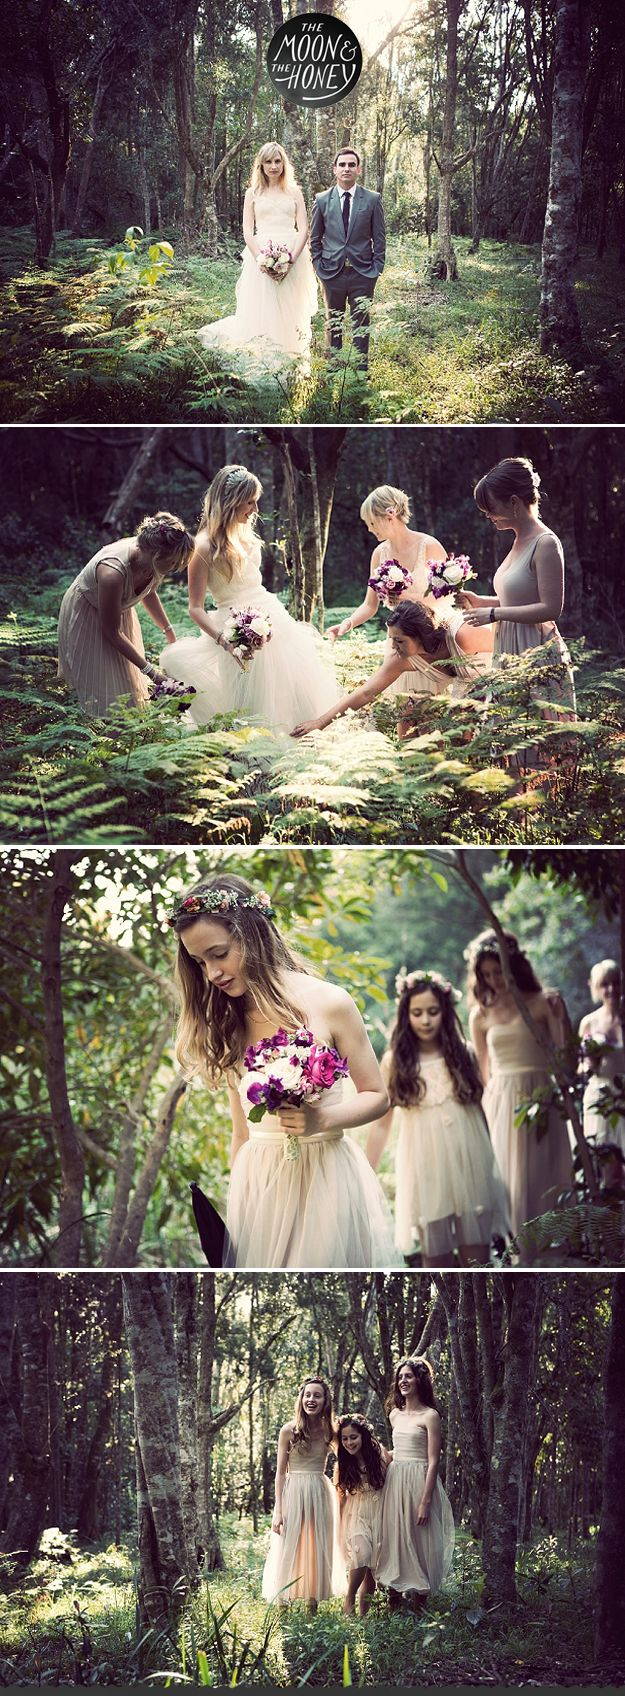 Iowa Weddings | The Moon & The Honey  Rustic, Woodland, Forest, Wedding inspiration